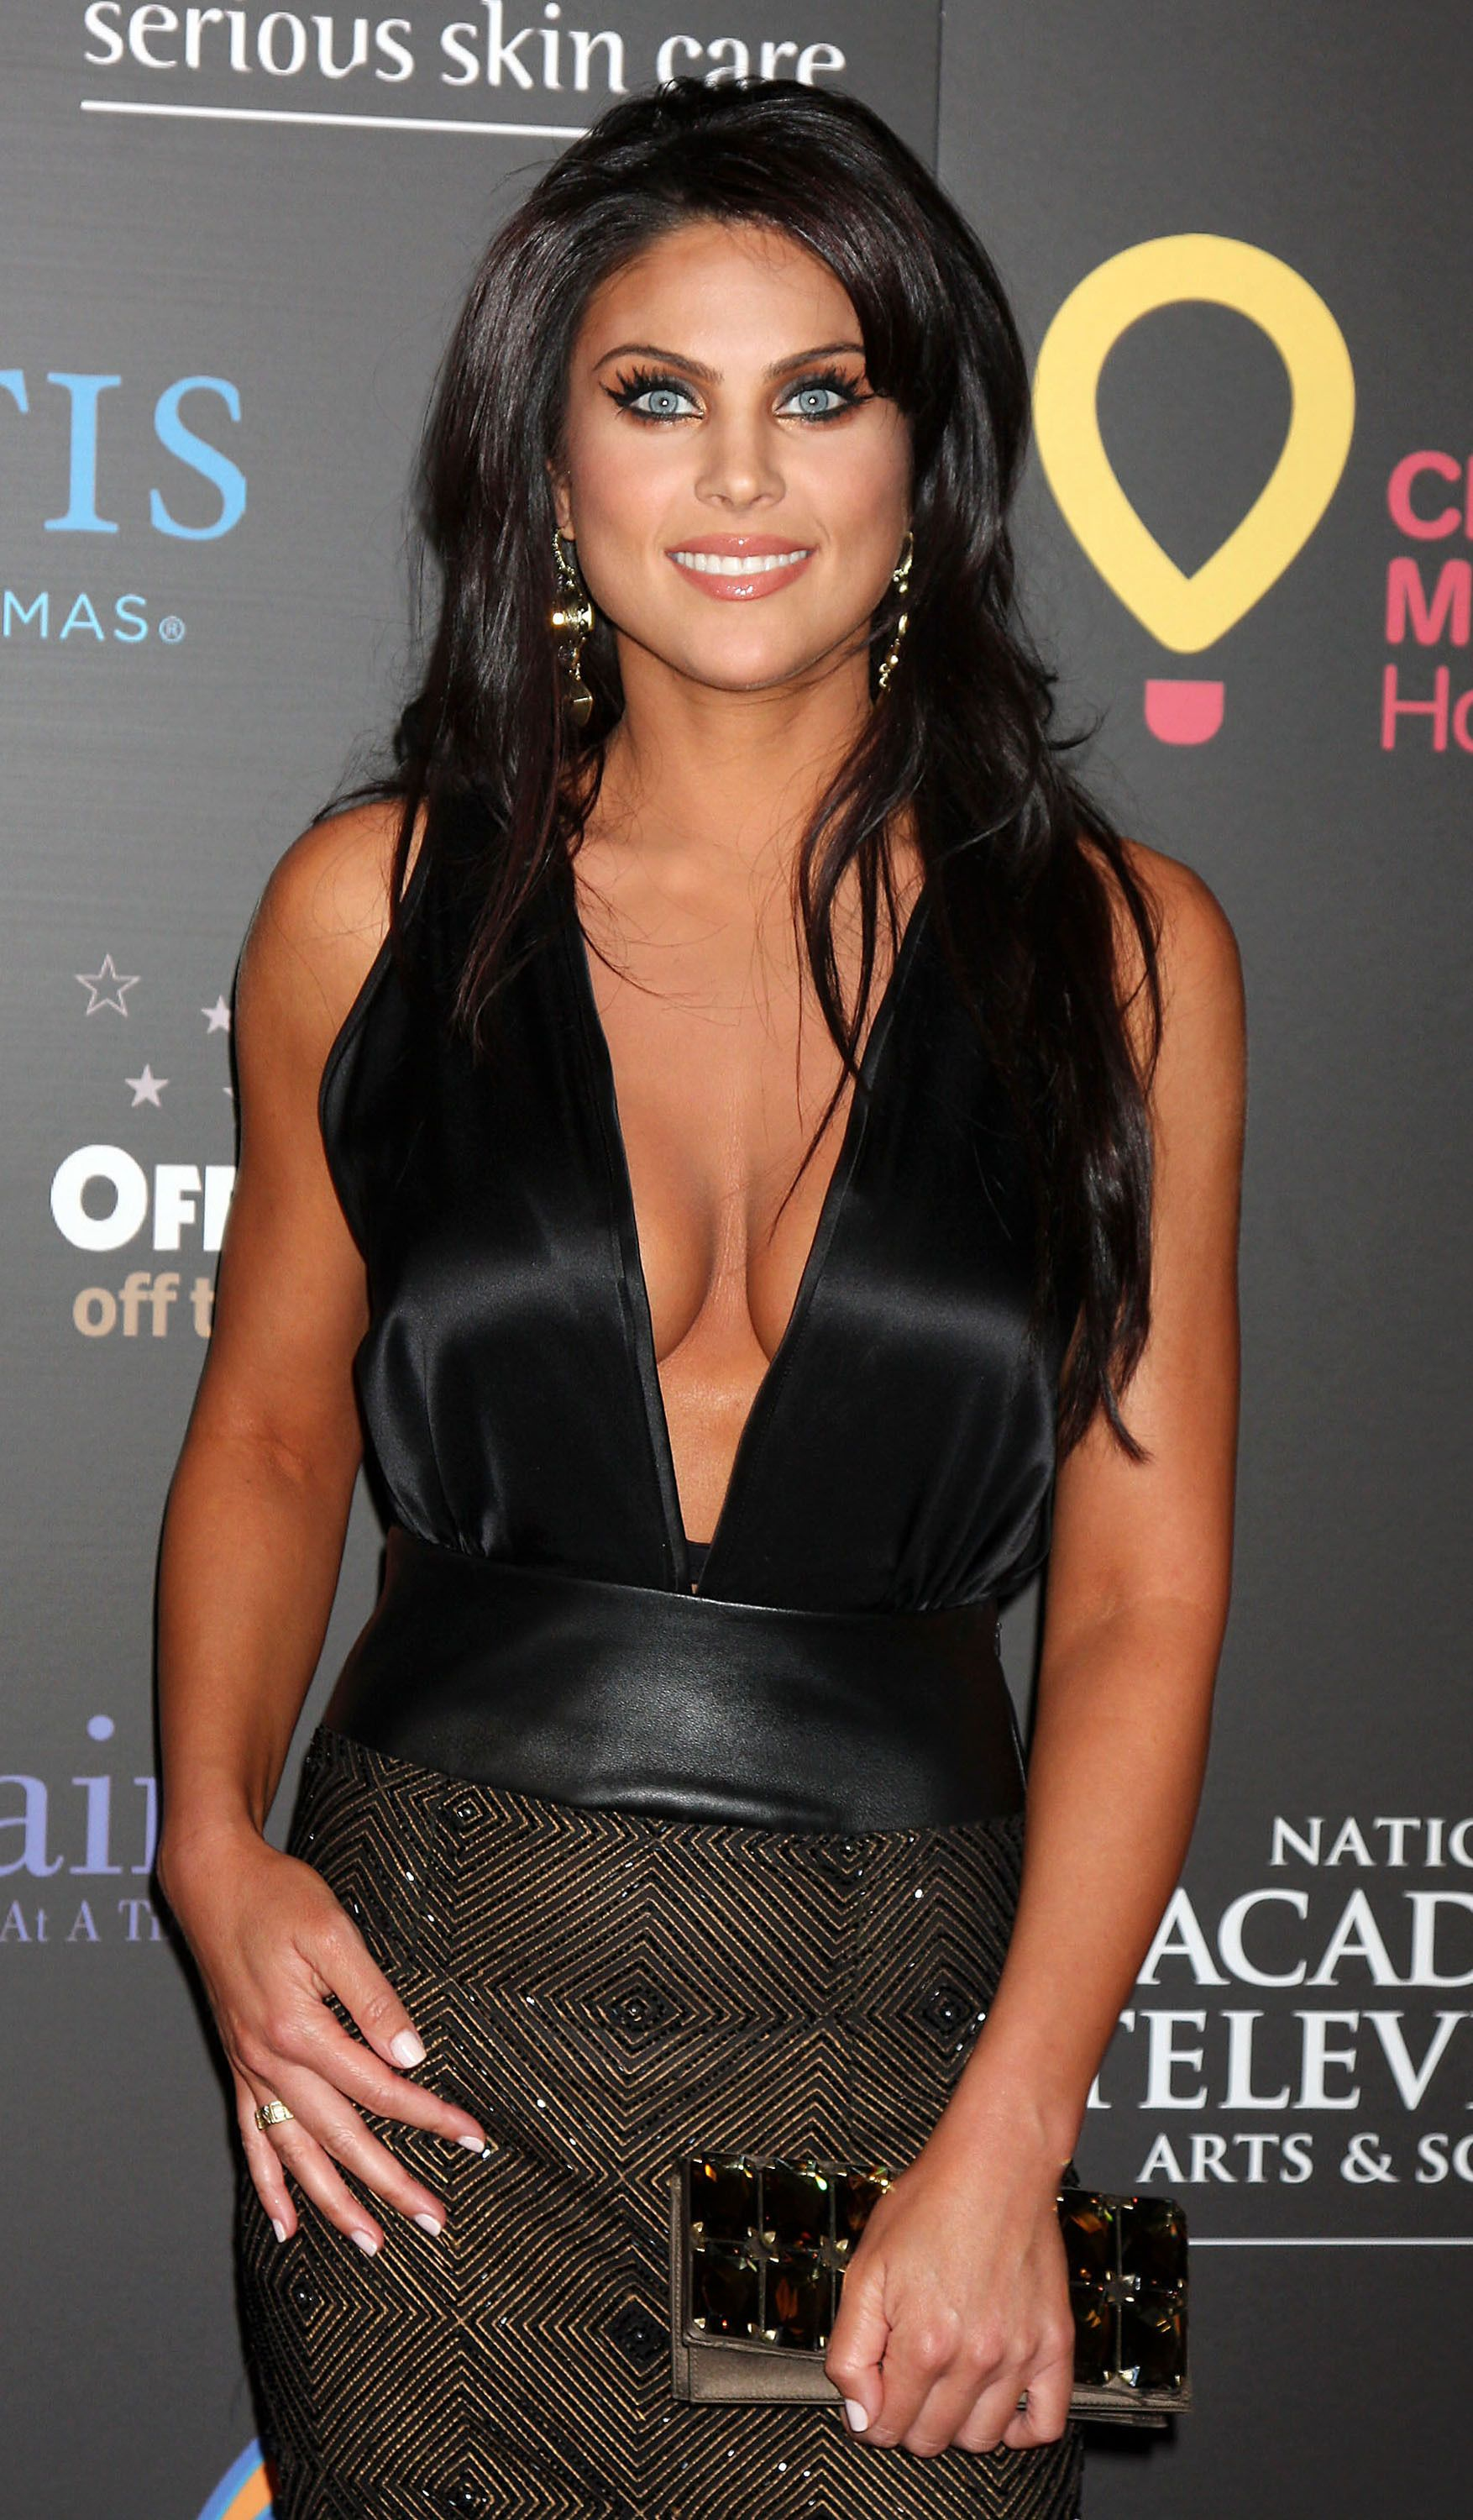 Nadia Bjorlin House Days Of Our Lives Hot Actresses Gorgeous Women Beautiful Celebrities